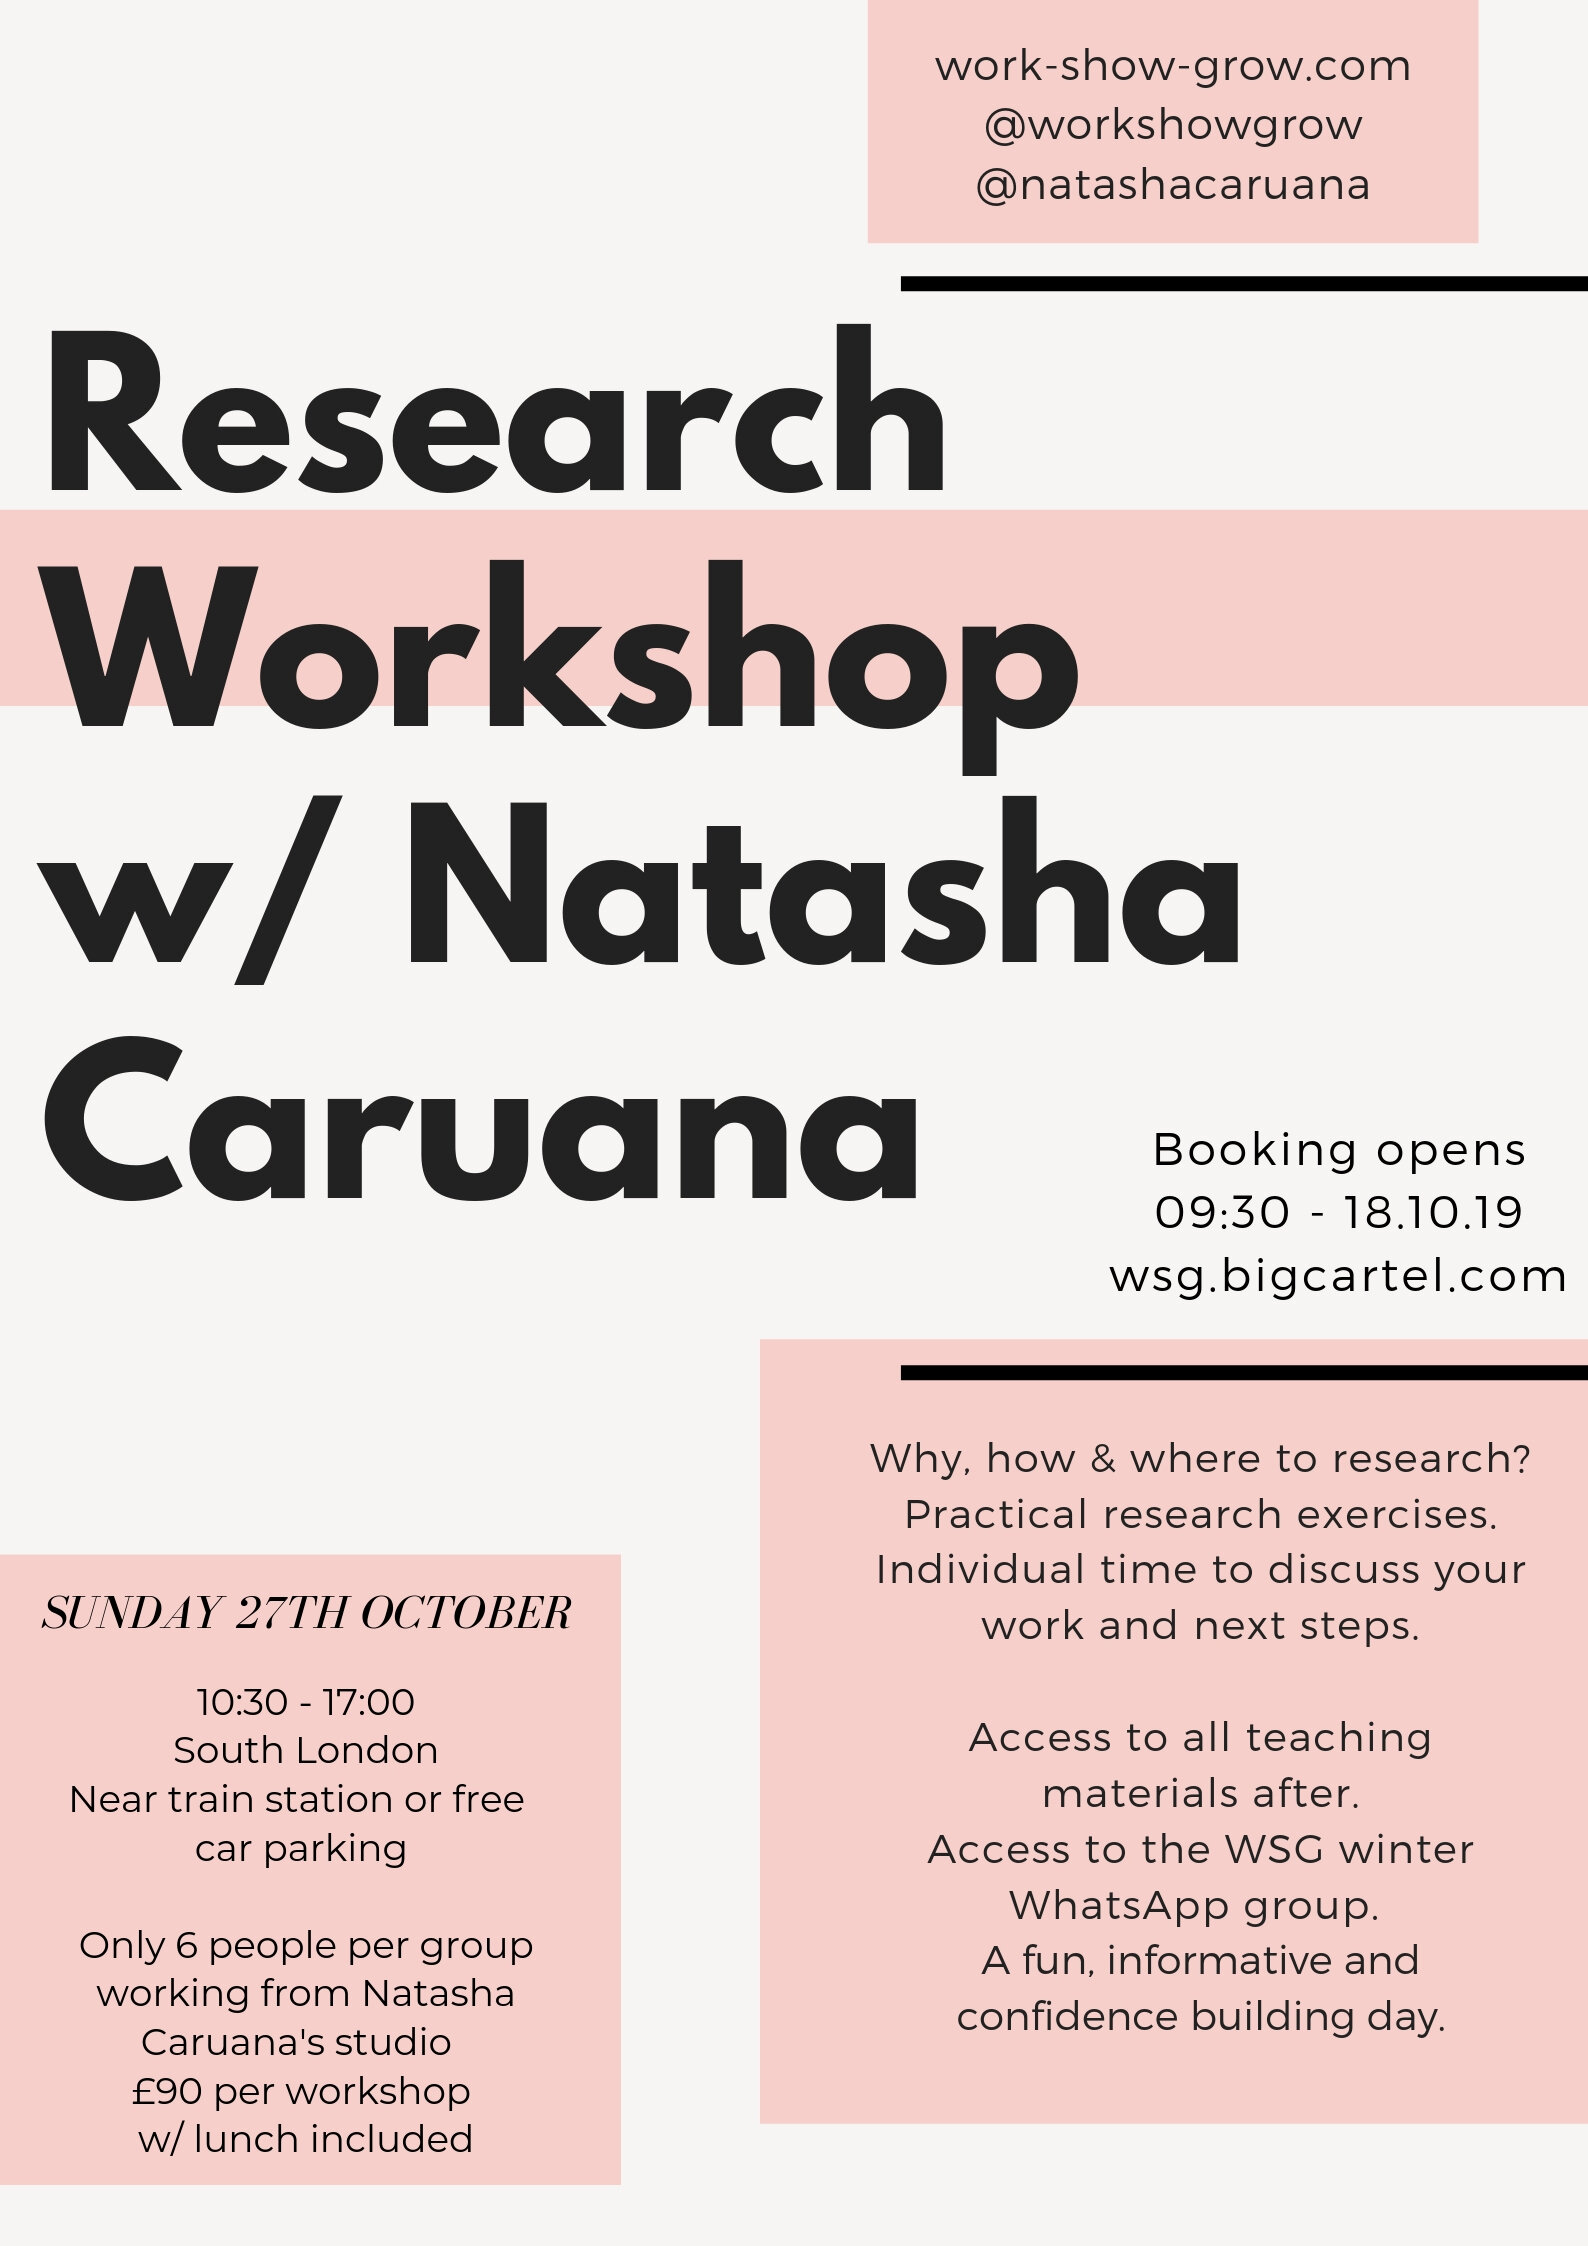 RESEARCH -Sunday 27th October10:30 - 17:00BOOK HERE - Why, how & where to research?Practical research exercises.Individual time to discuss your work and next steps.